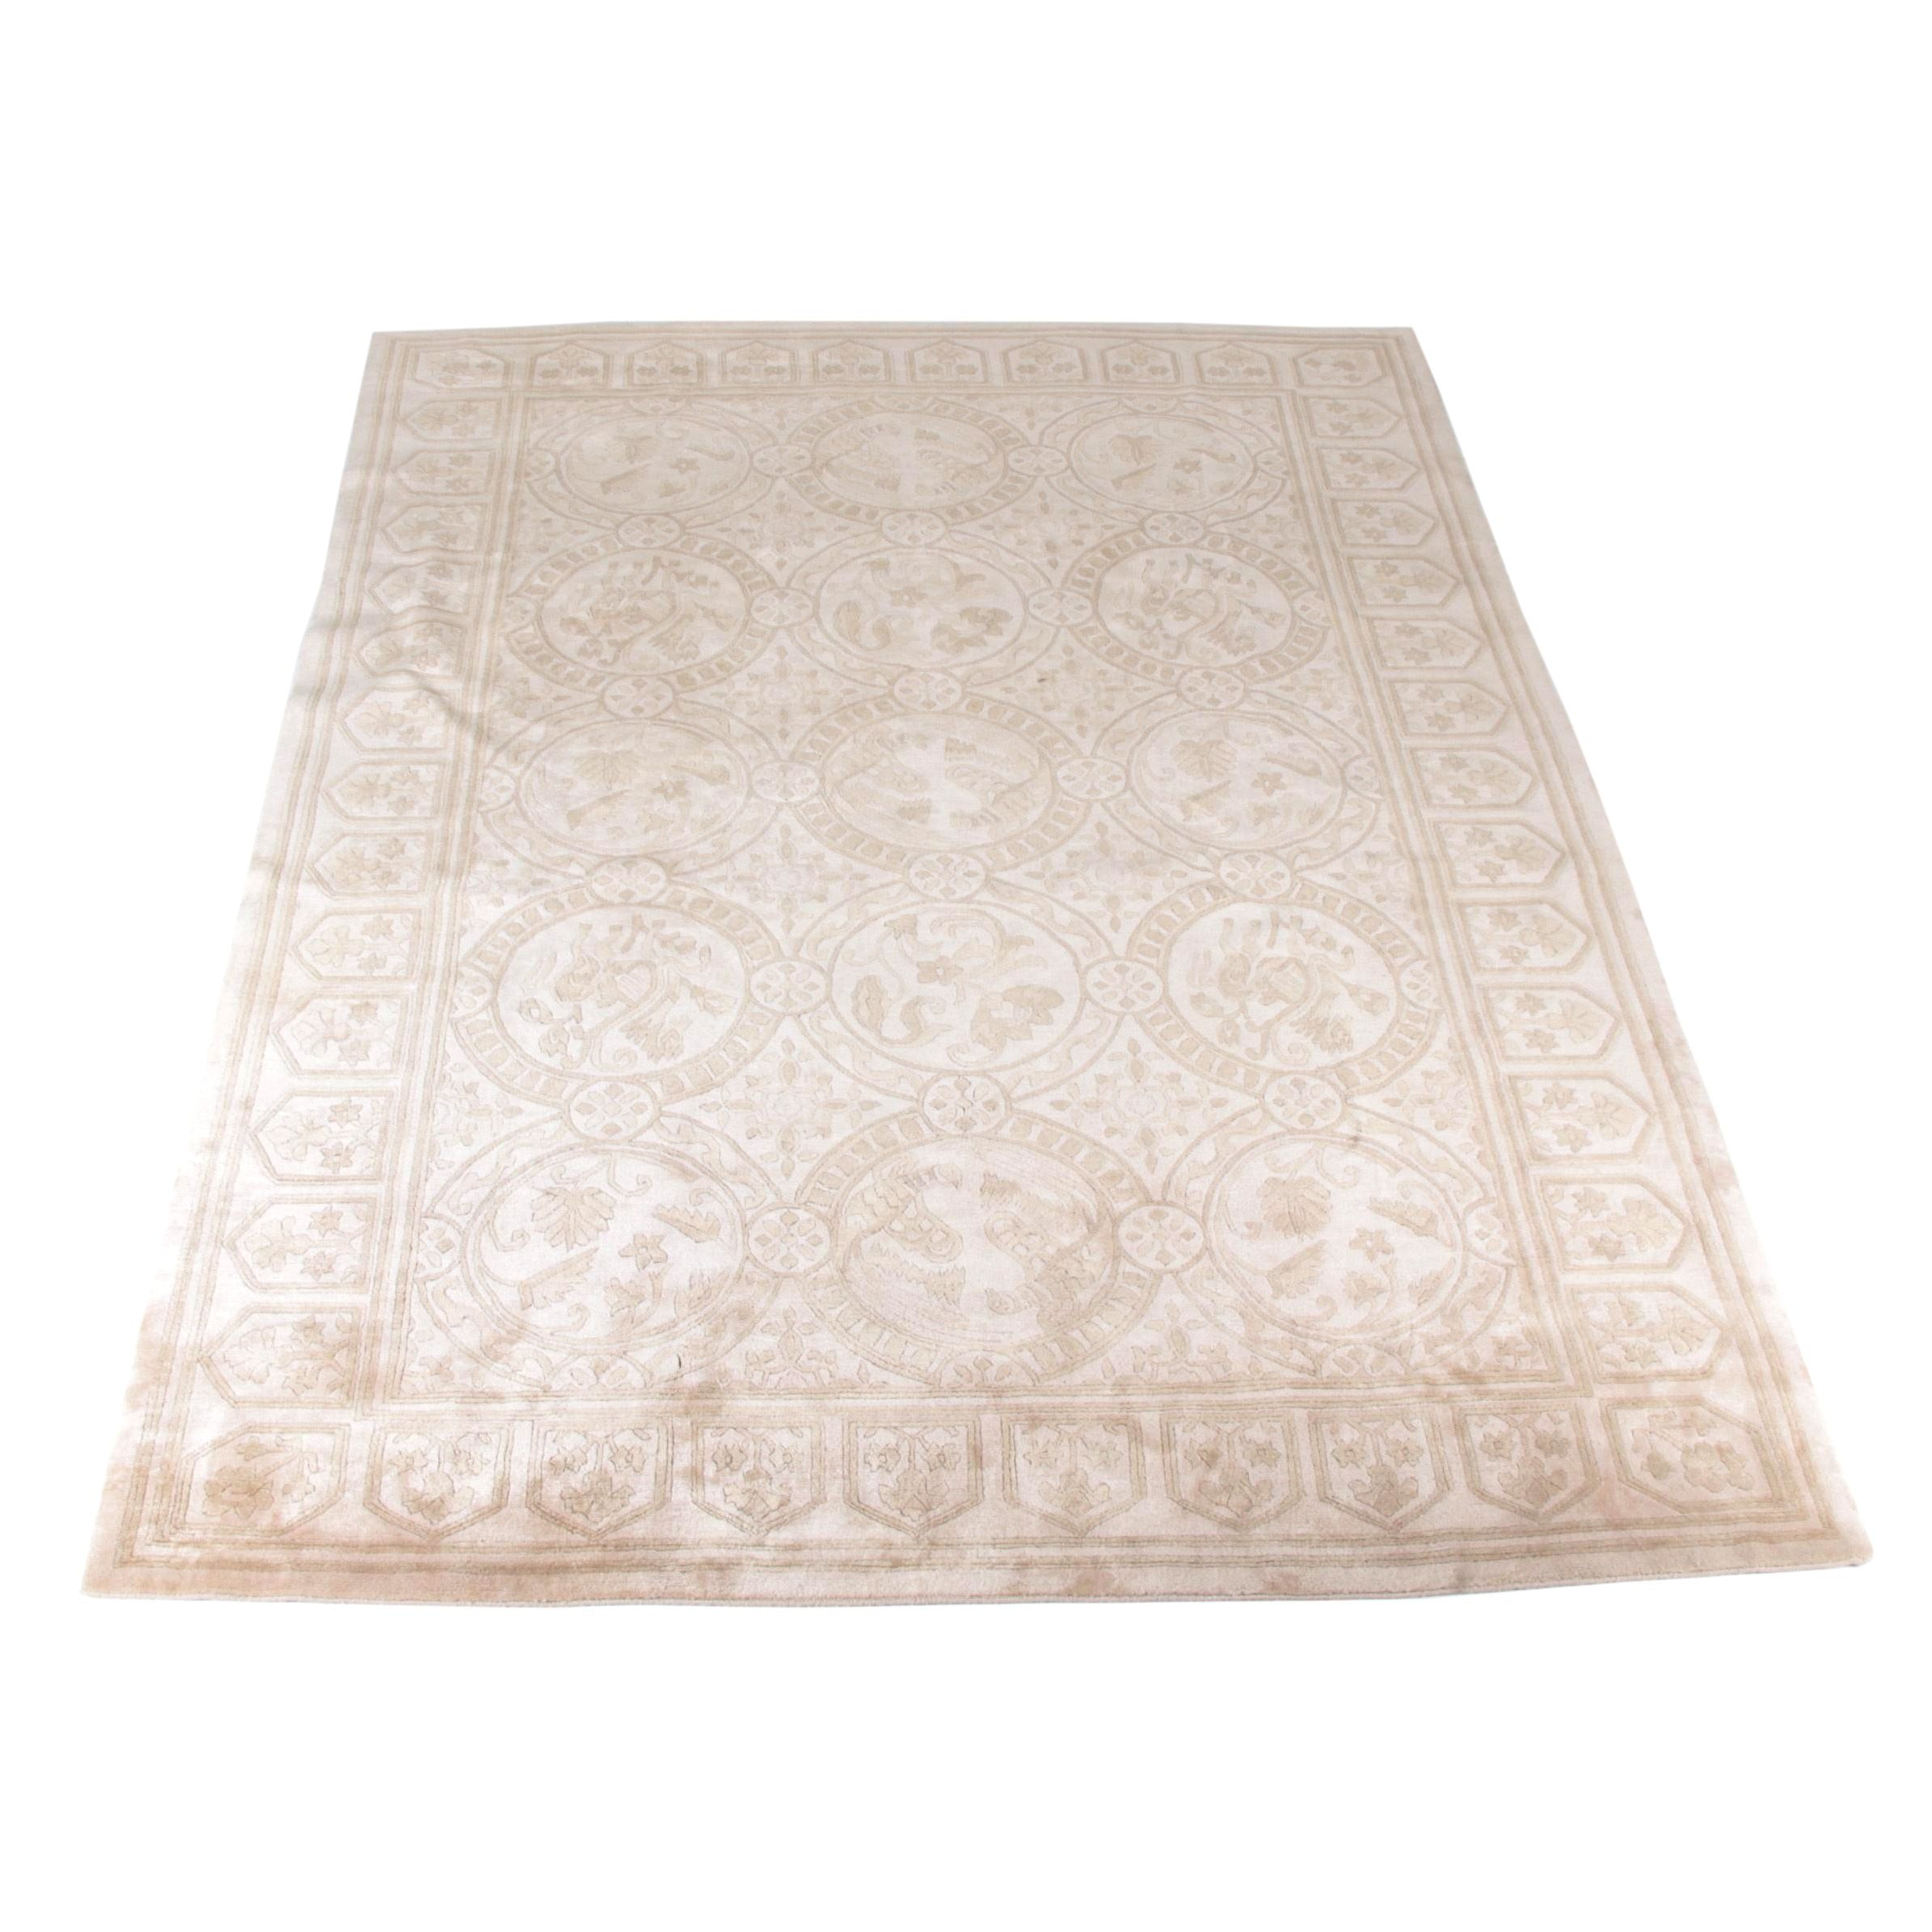 Hand-Knotted Indo-Tibetan Medallion Carved Wool Area Rug